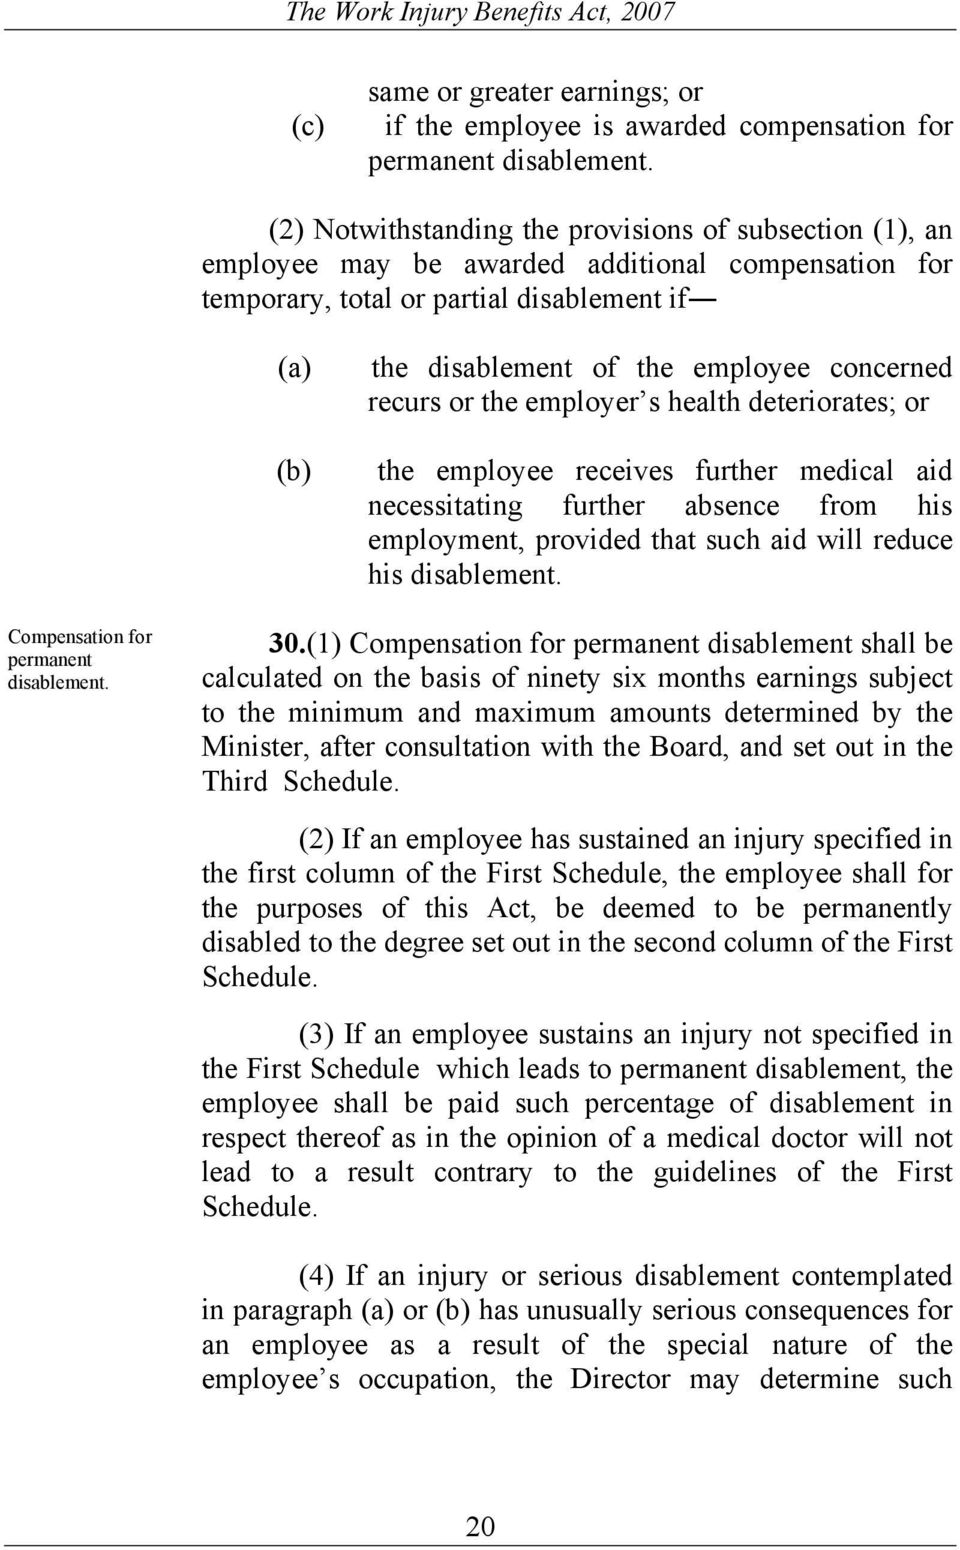 concerned recurs or the employer s health deteriorates; or the employee receives further medical aid necessitating further absence from his employment, provided that such aid will reduce his